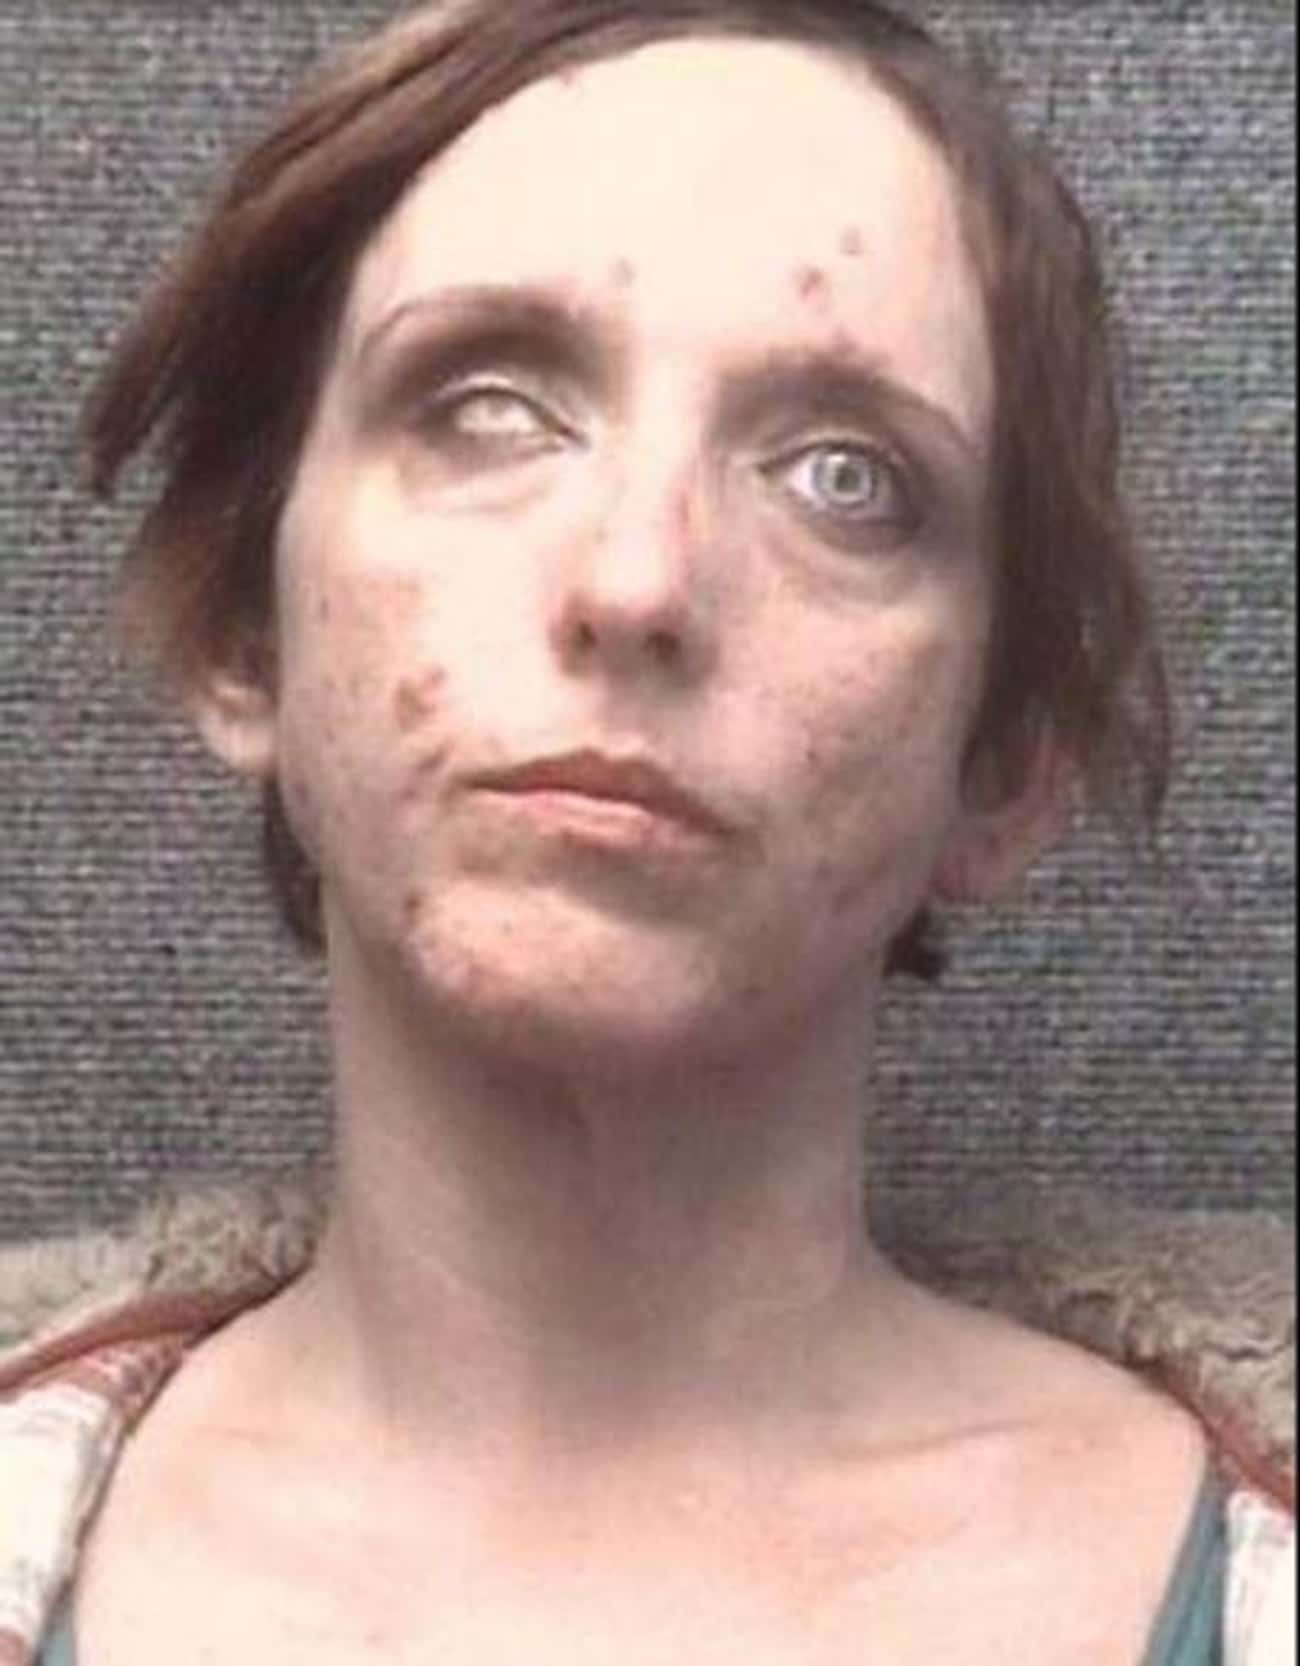 Marylin Manson Would Be Proud is listed (or ranked) 1 on the list Scary Mugshots Of People You Wouldn't Want To Share A Cell With